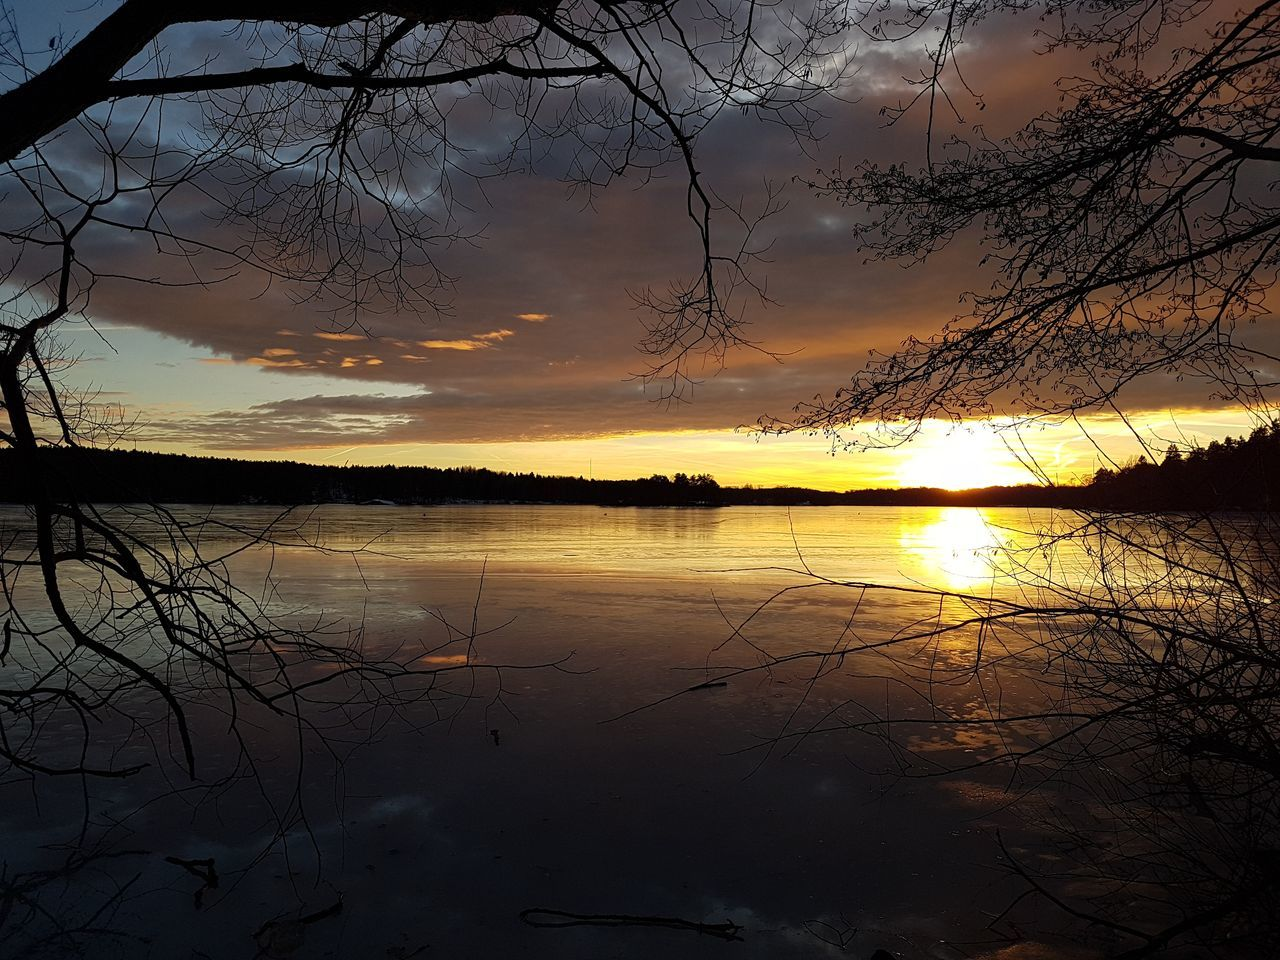 Sunset Reflection Water Sky Nature Beauty In Nature Dramatic Sky Silhouette Tree Scenics Lake Tranquility Outdoors Wet No People Sun Reflection Lake Refraction